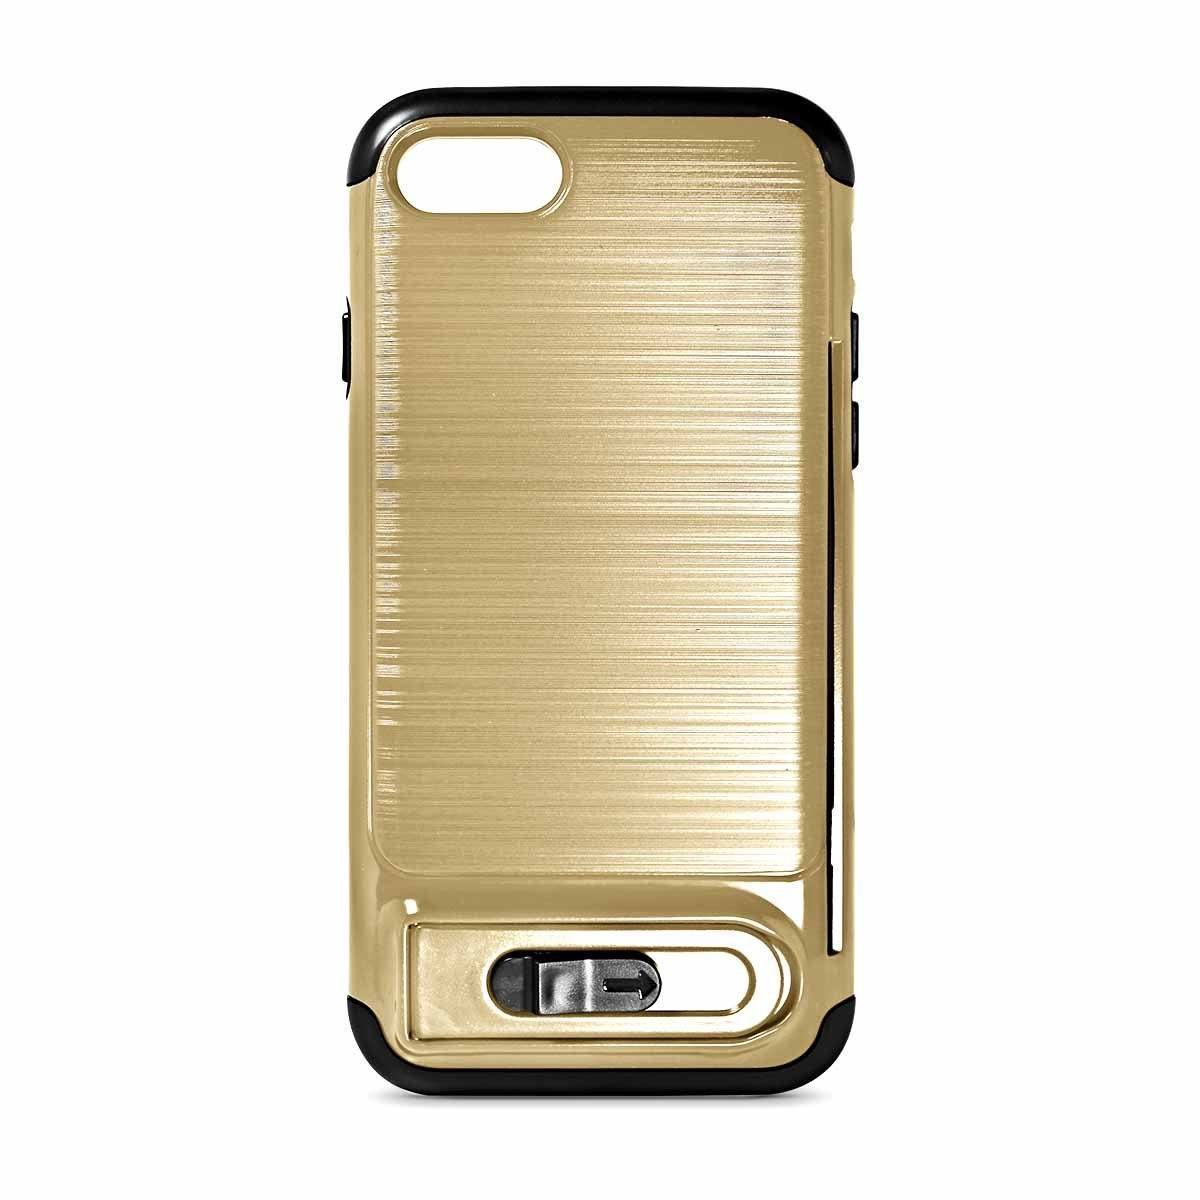 My Card Sliding Case for iPhone 6P - Gold